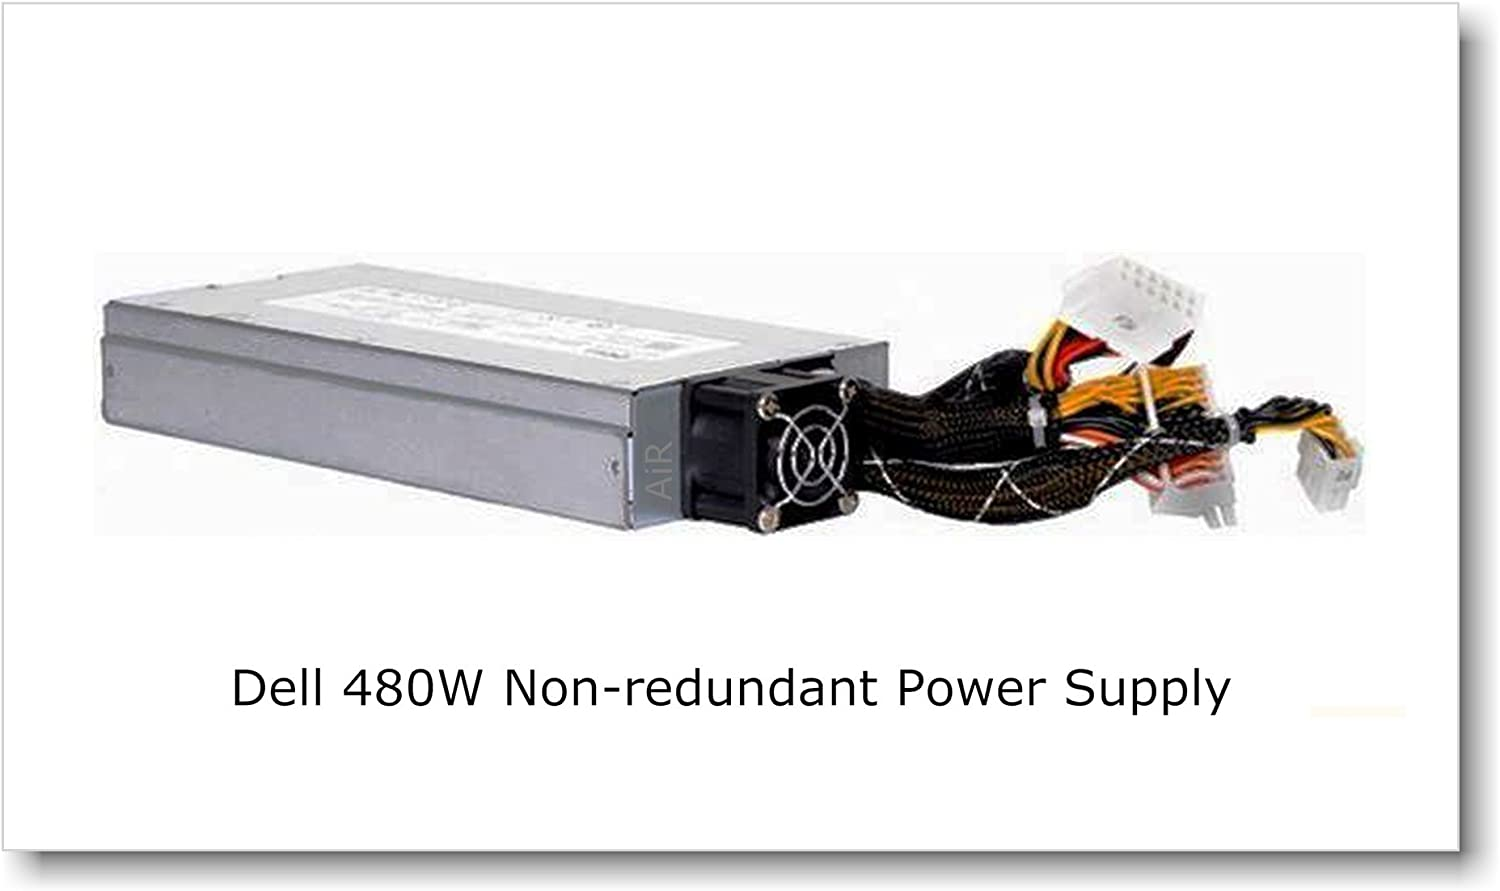 Genuine Dell power supply 80 PLUS certified, 480W non-redundant unit for PowerEdge R410, PowerEdge R415 and PowerEdge R510 servers. P/N# D480E-S0